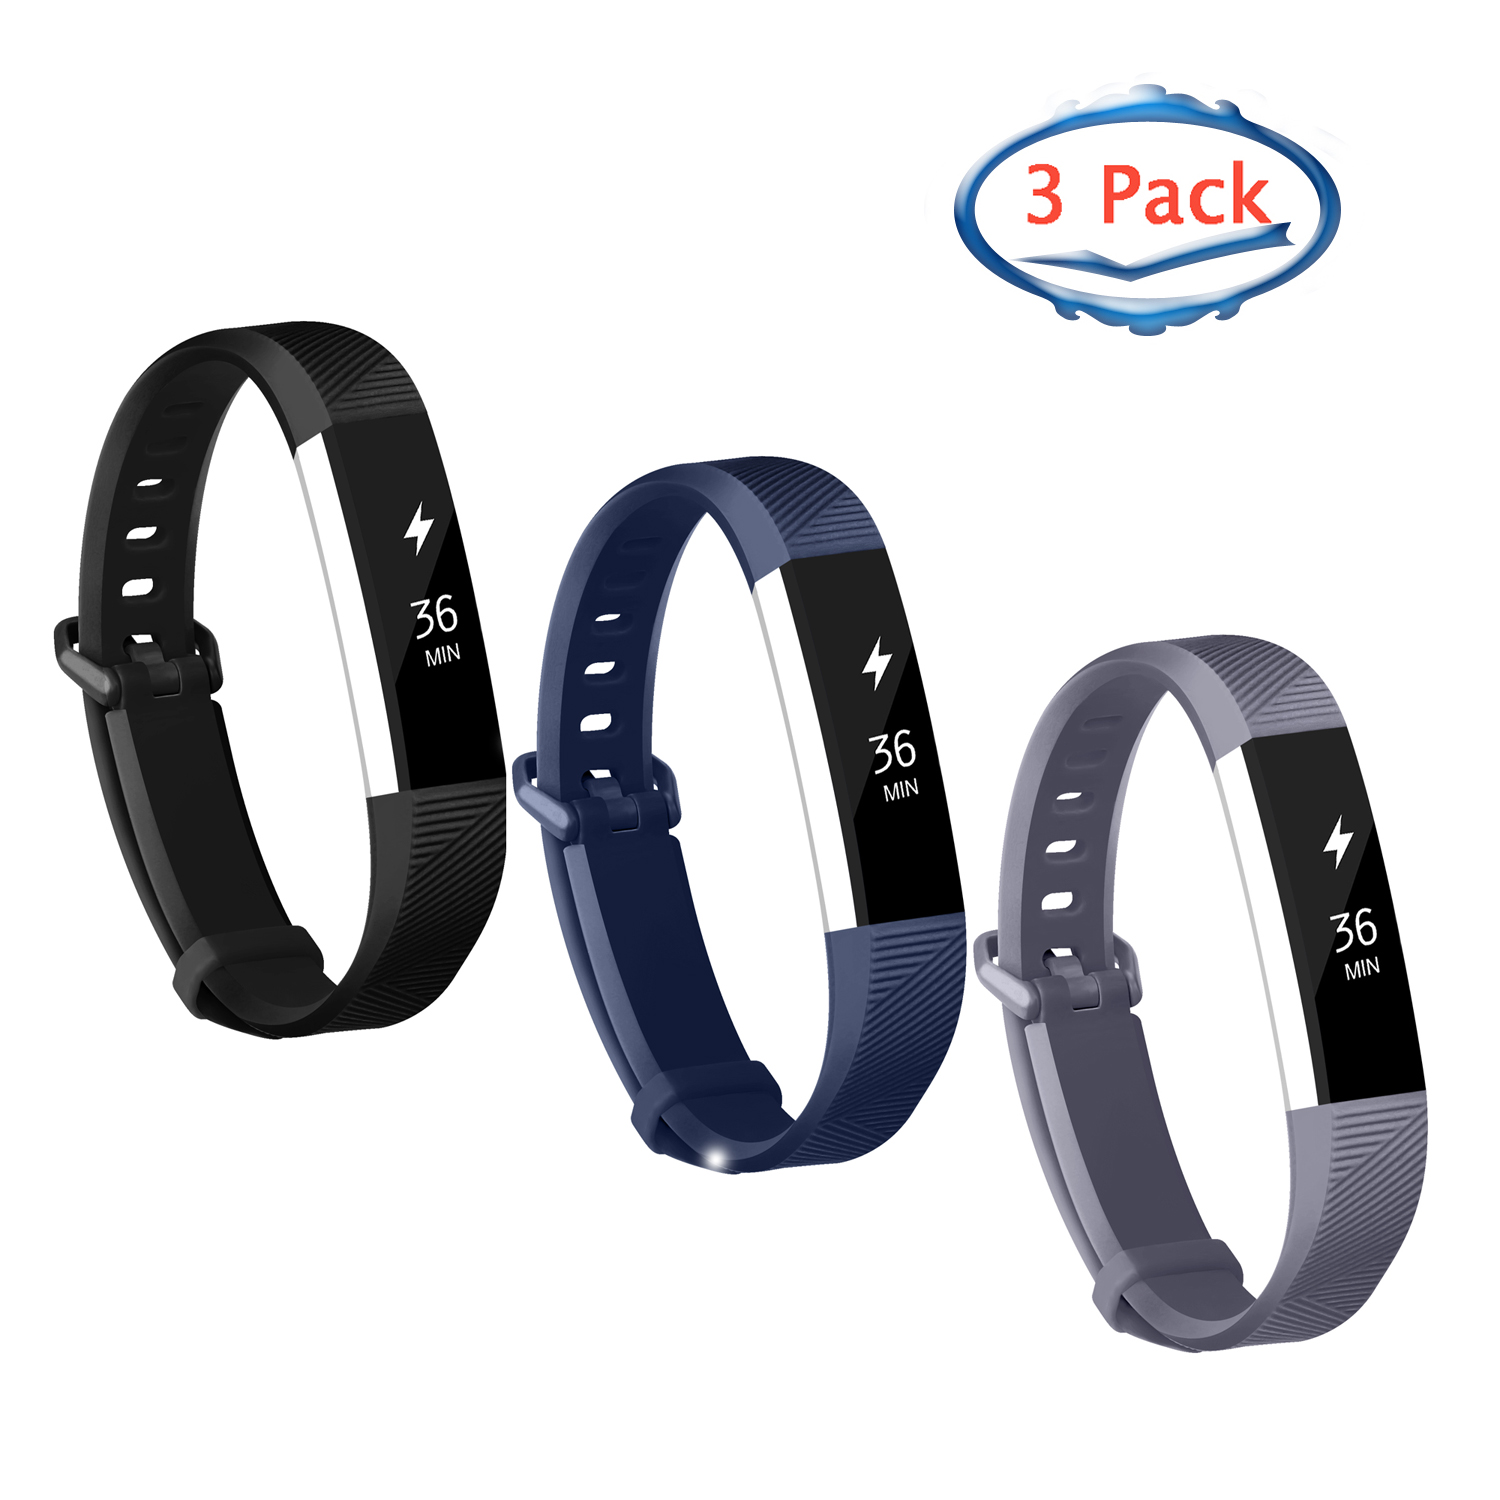 Adepoy 3-Pack Replacement Sport Wrist Strap Bands for Fitbit Alta/Fitbit Alta HR